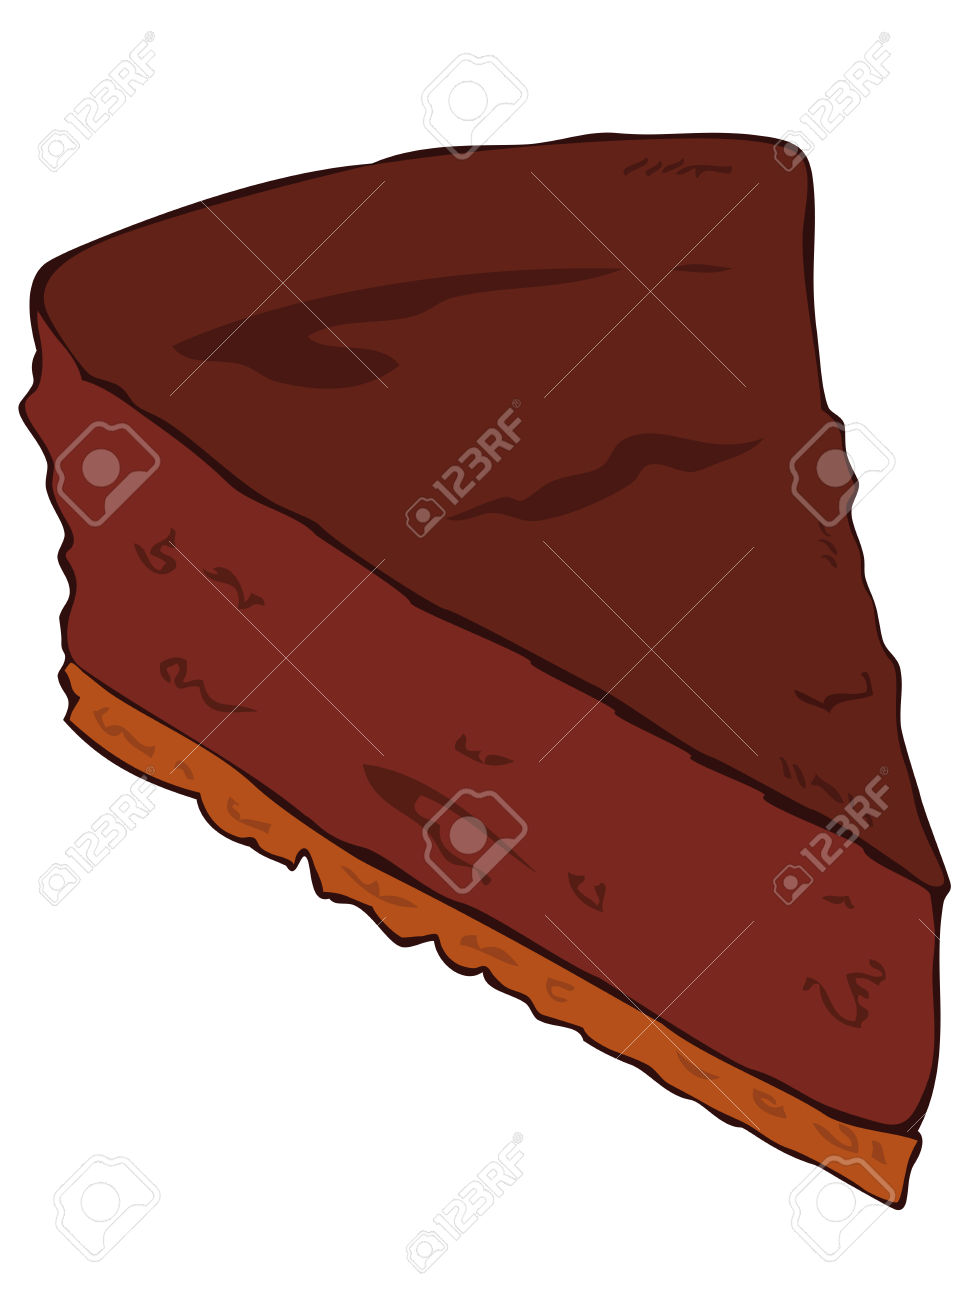 Chocolate Cake Slice. Royalty Free Cliparts, Vectors, And Stock.